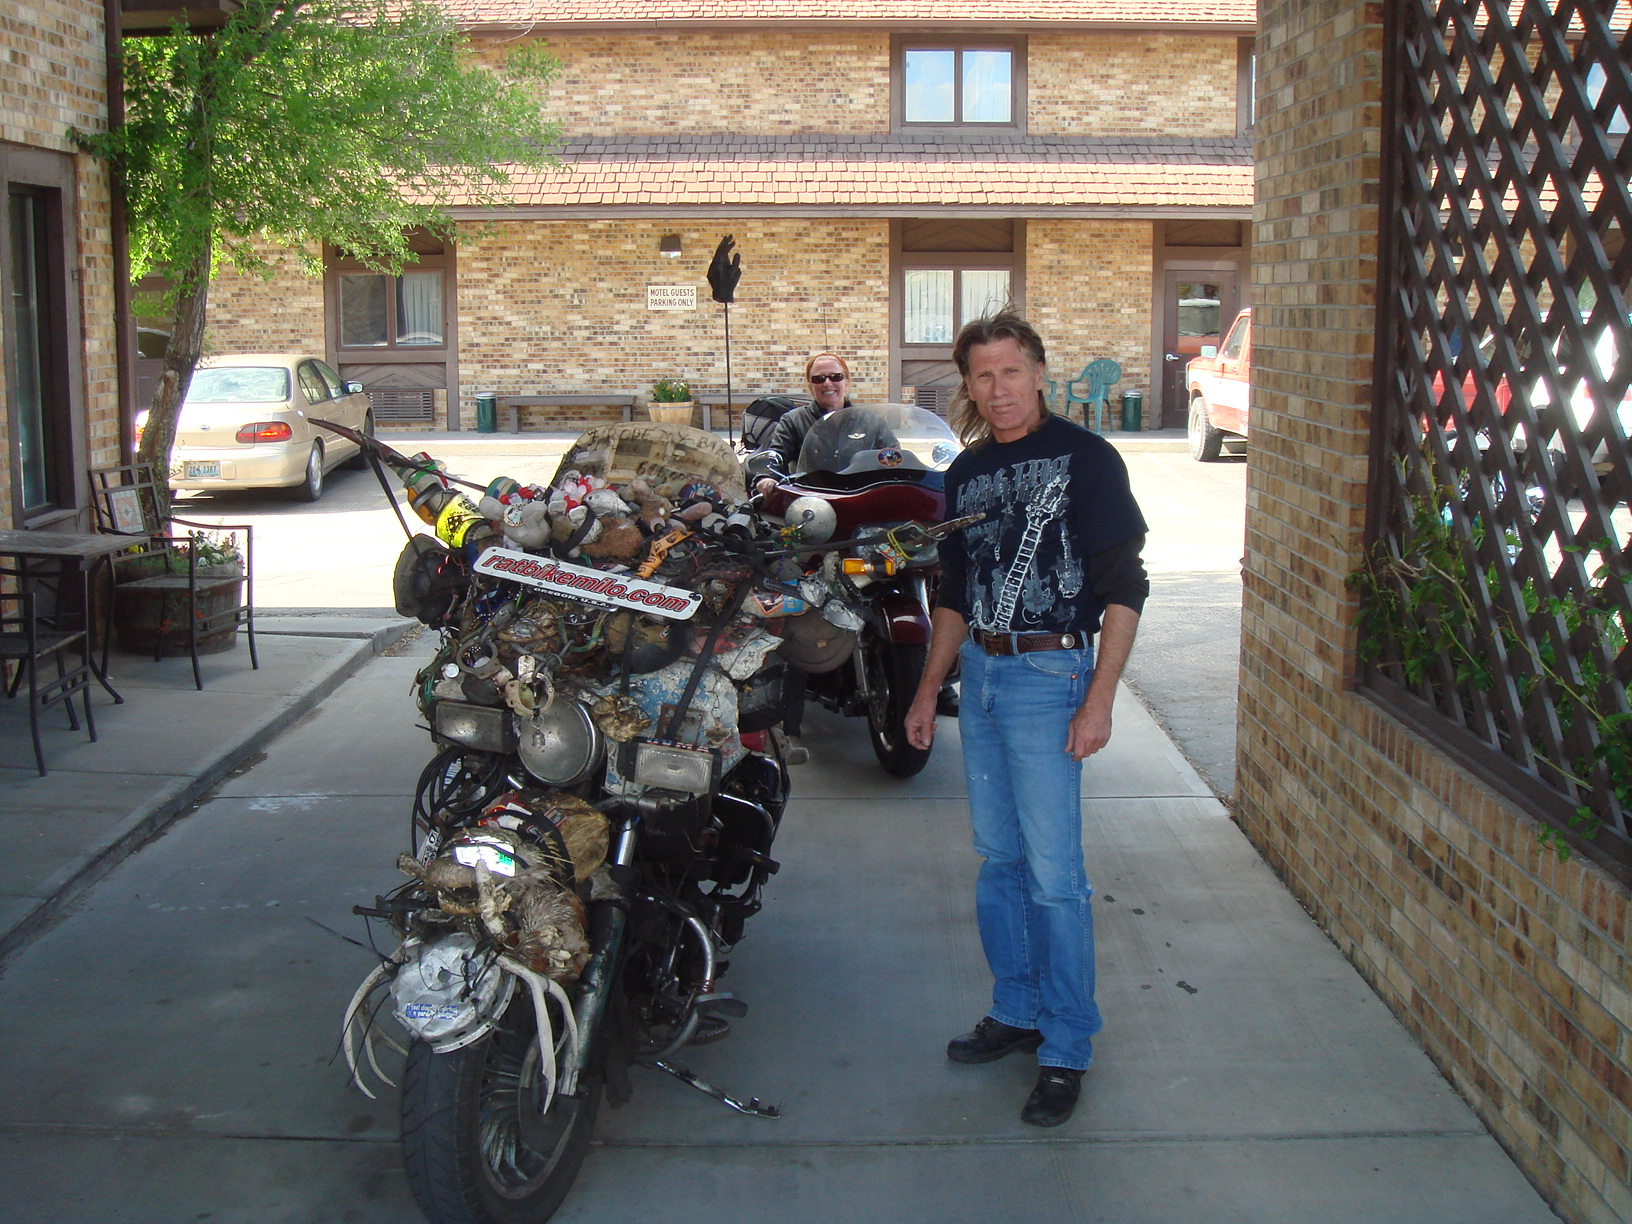 Gary, a rider who checked us in